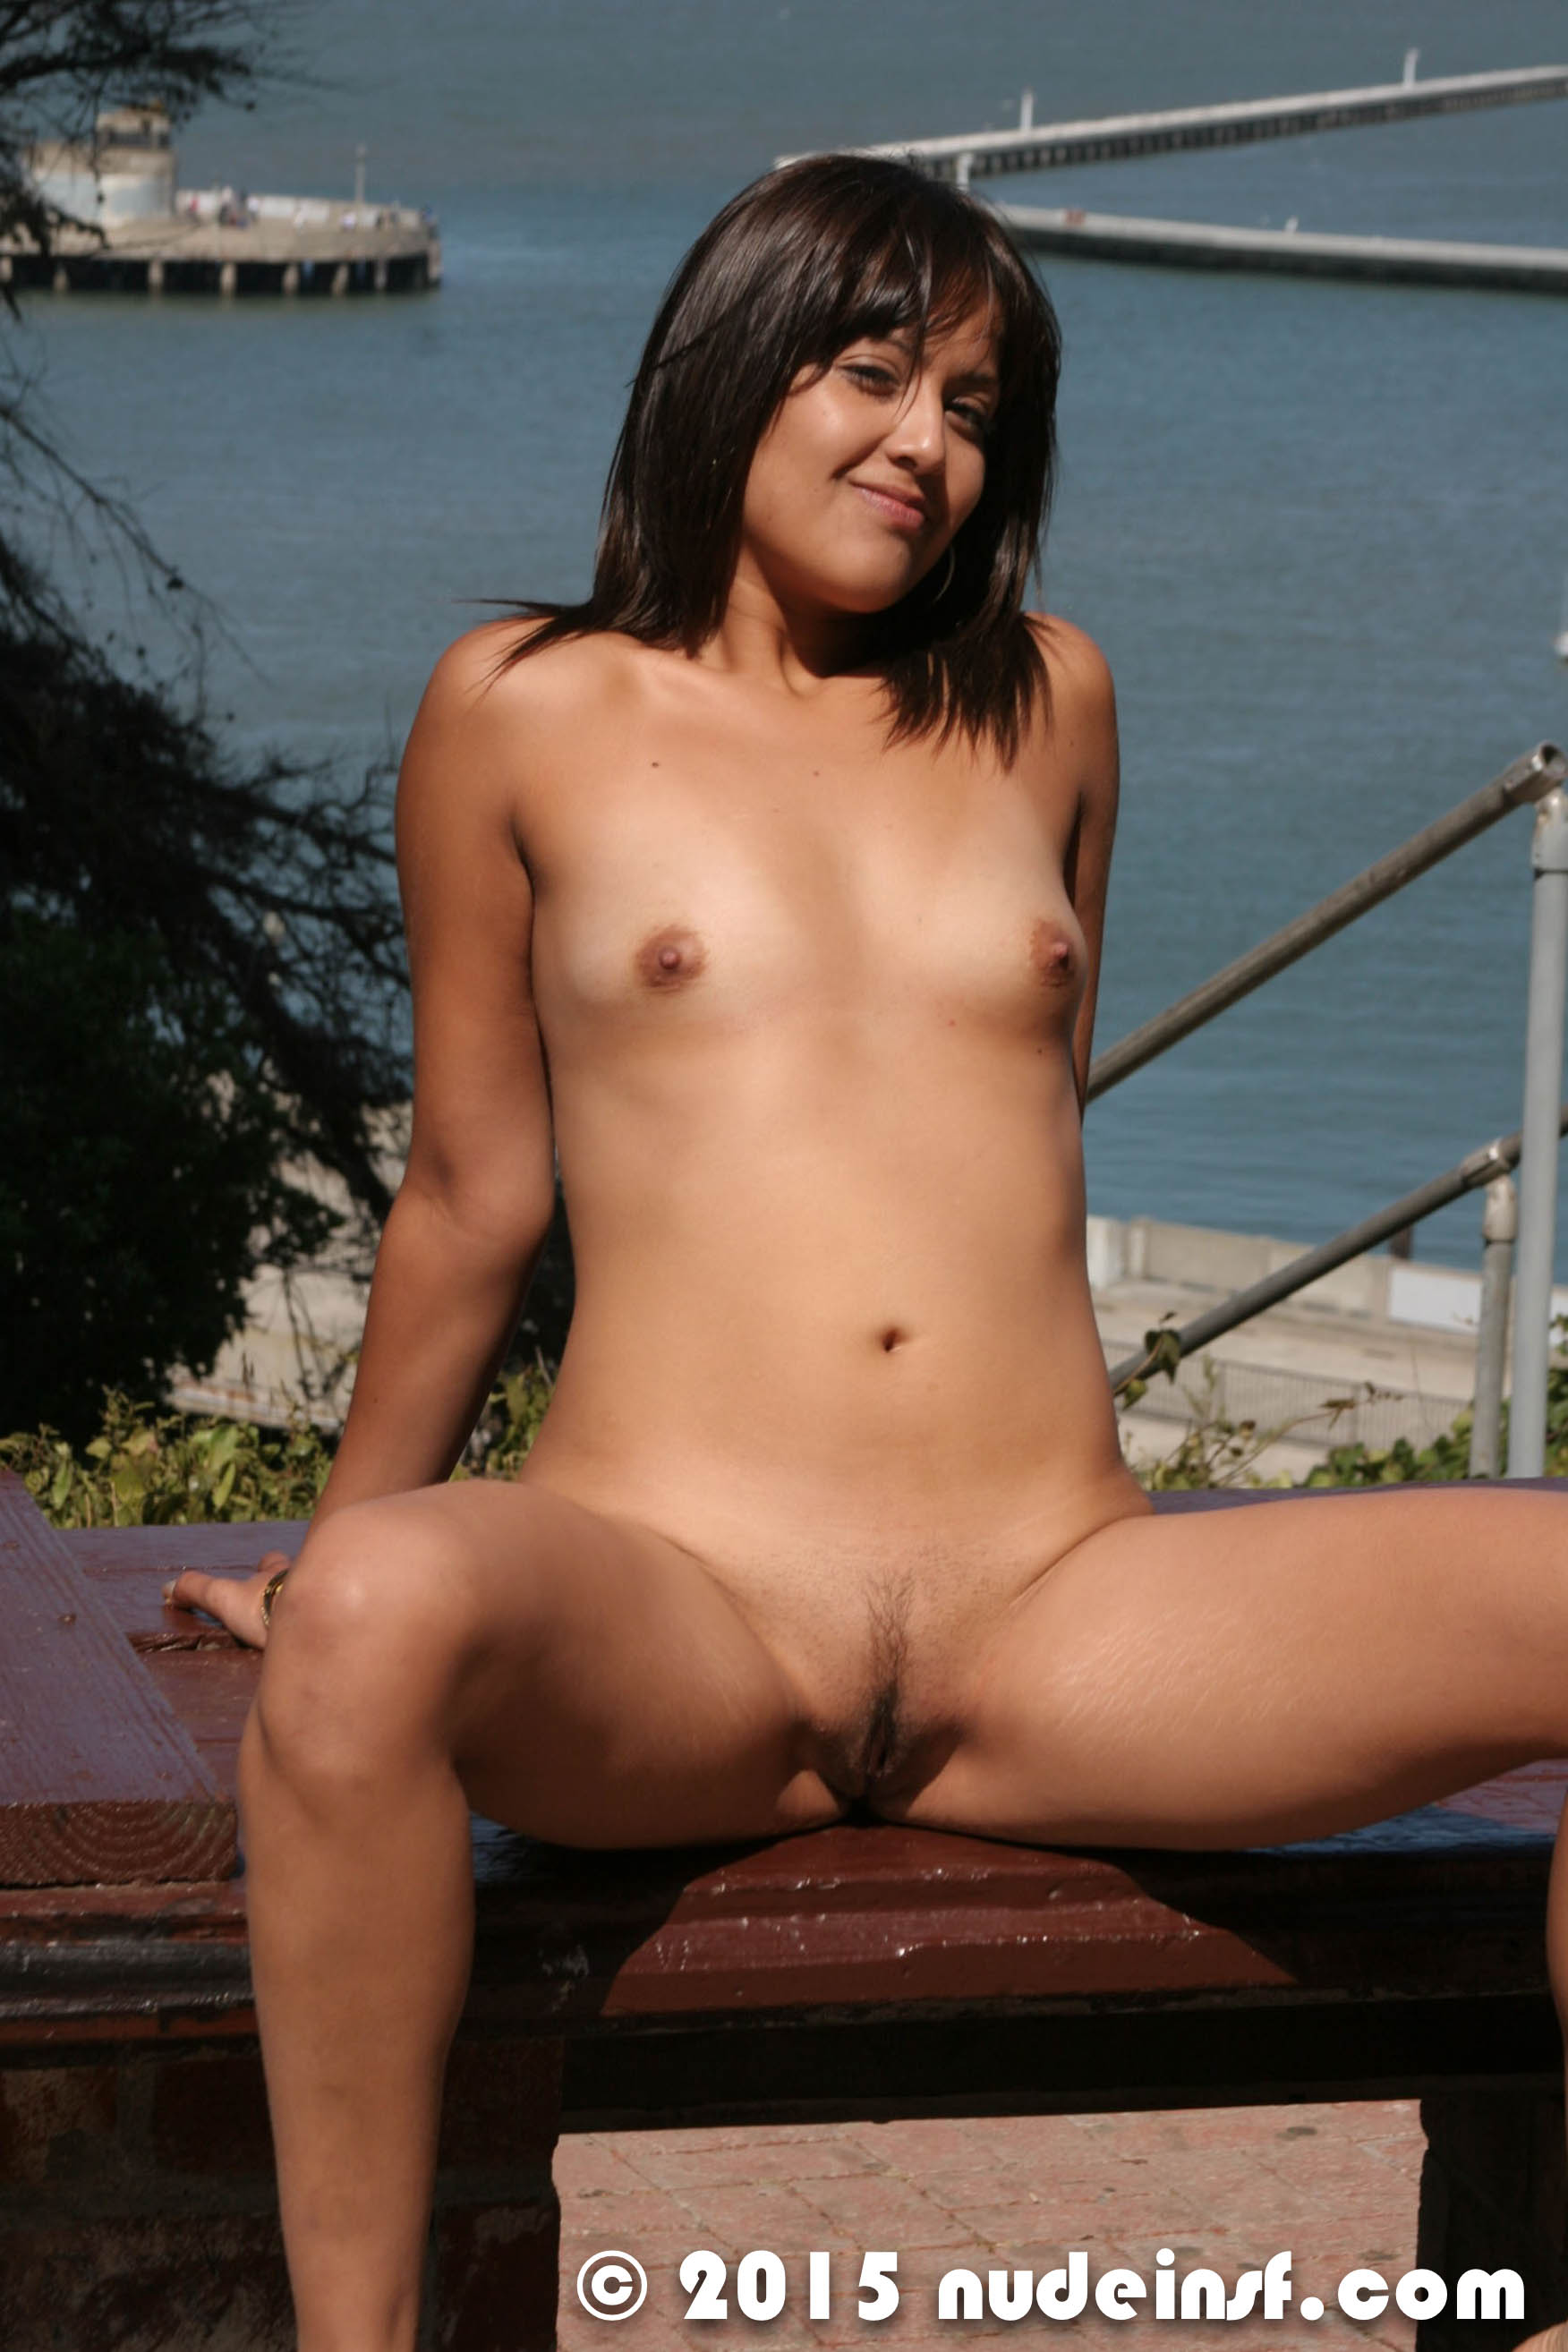 Down! Family Nudists Free 3gp Video Galleries recommend you